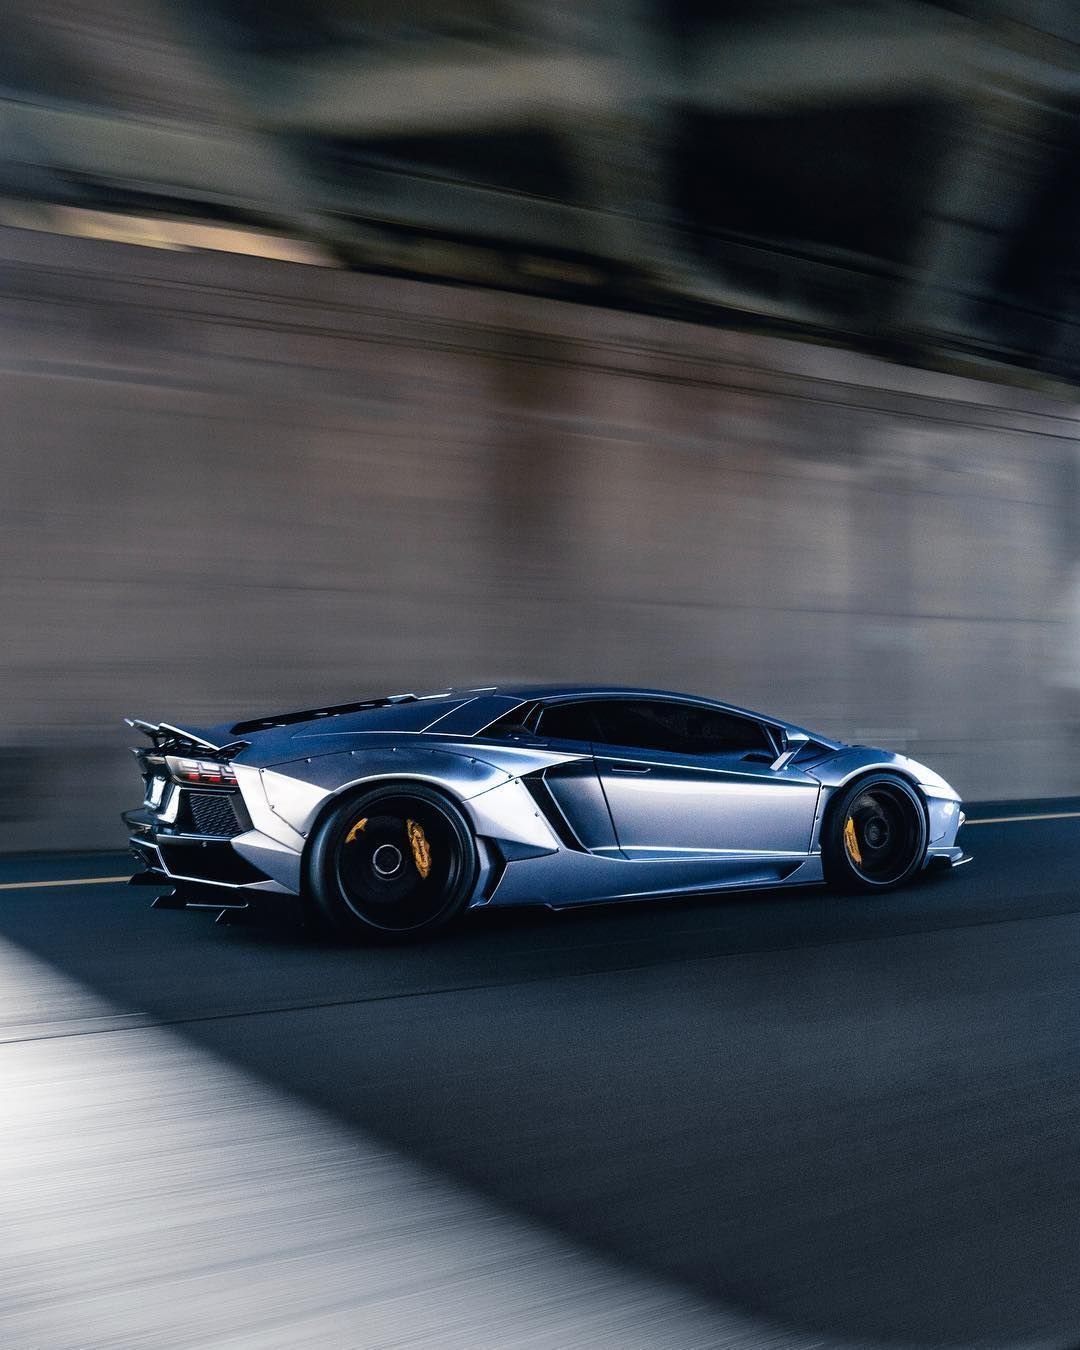 Daily Dose Of Super Car Inspiration Who Would Like To Test Drive This Baby Click To Find Out More Dreamcars Superc Sports Car Brands Sports Car Dream Cars